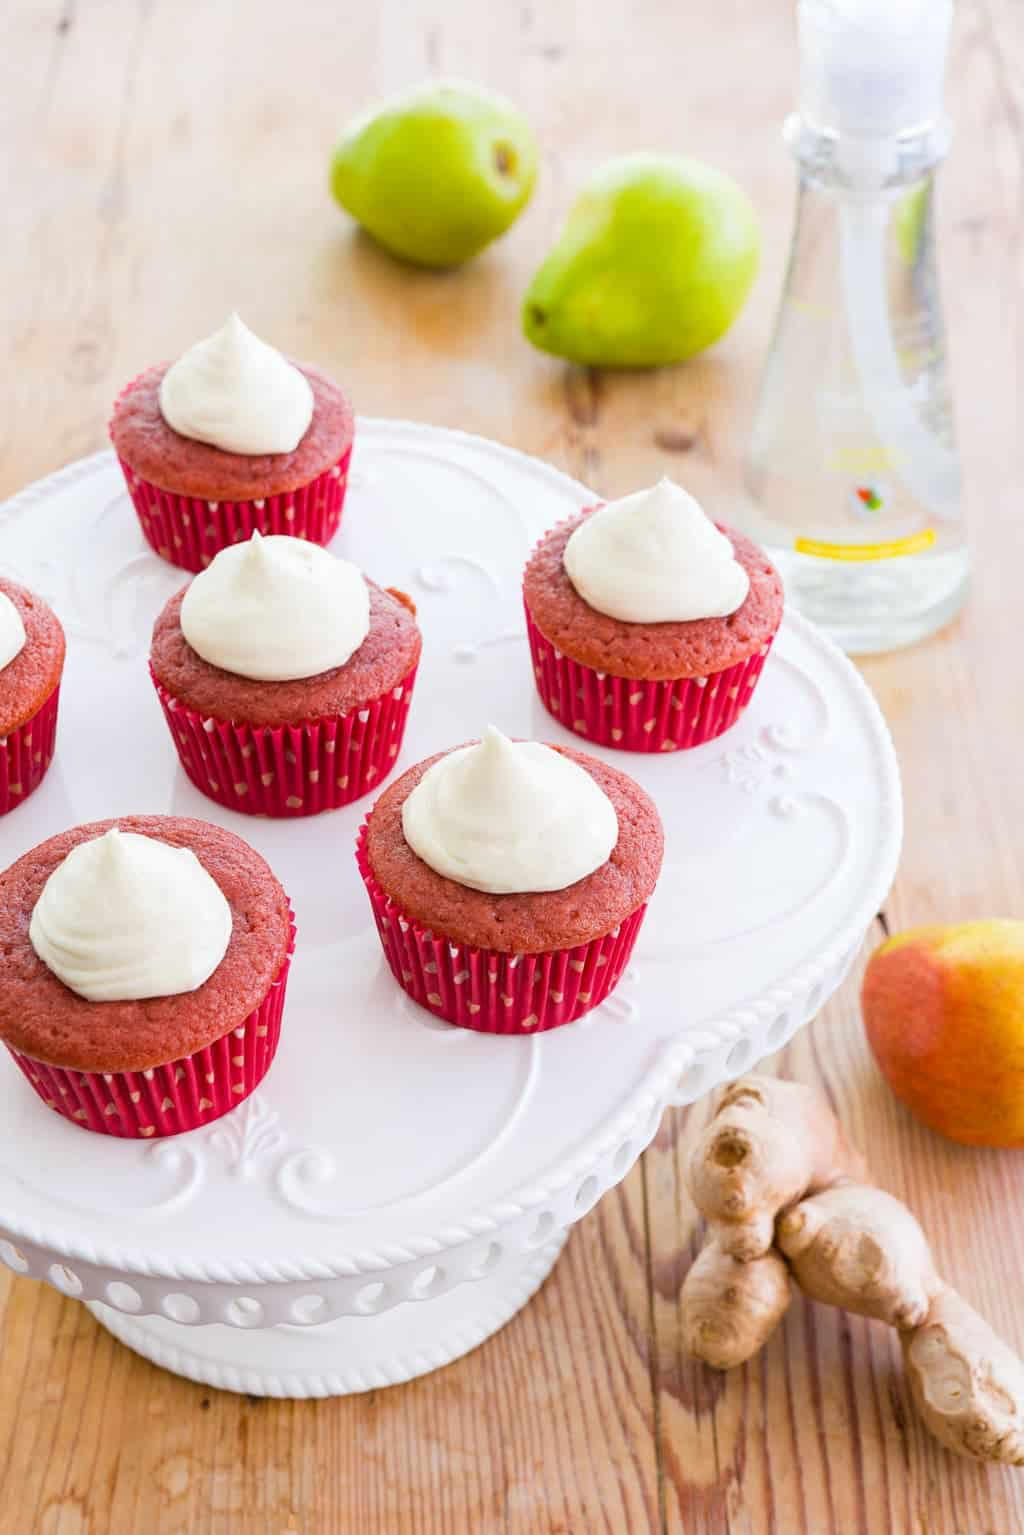 Red velvet cupcakes filled with caramel poached pear and topped with a ginger white chocolate cream cheese frosting.